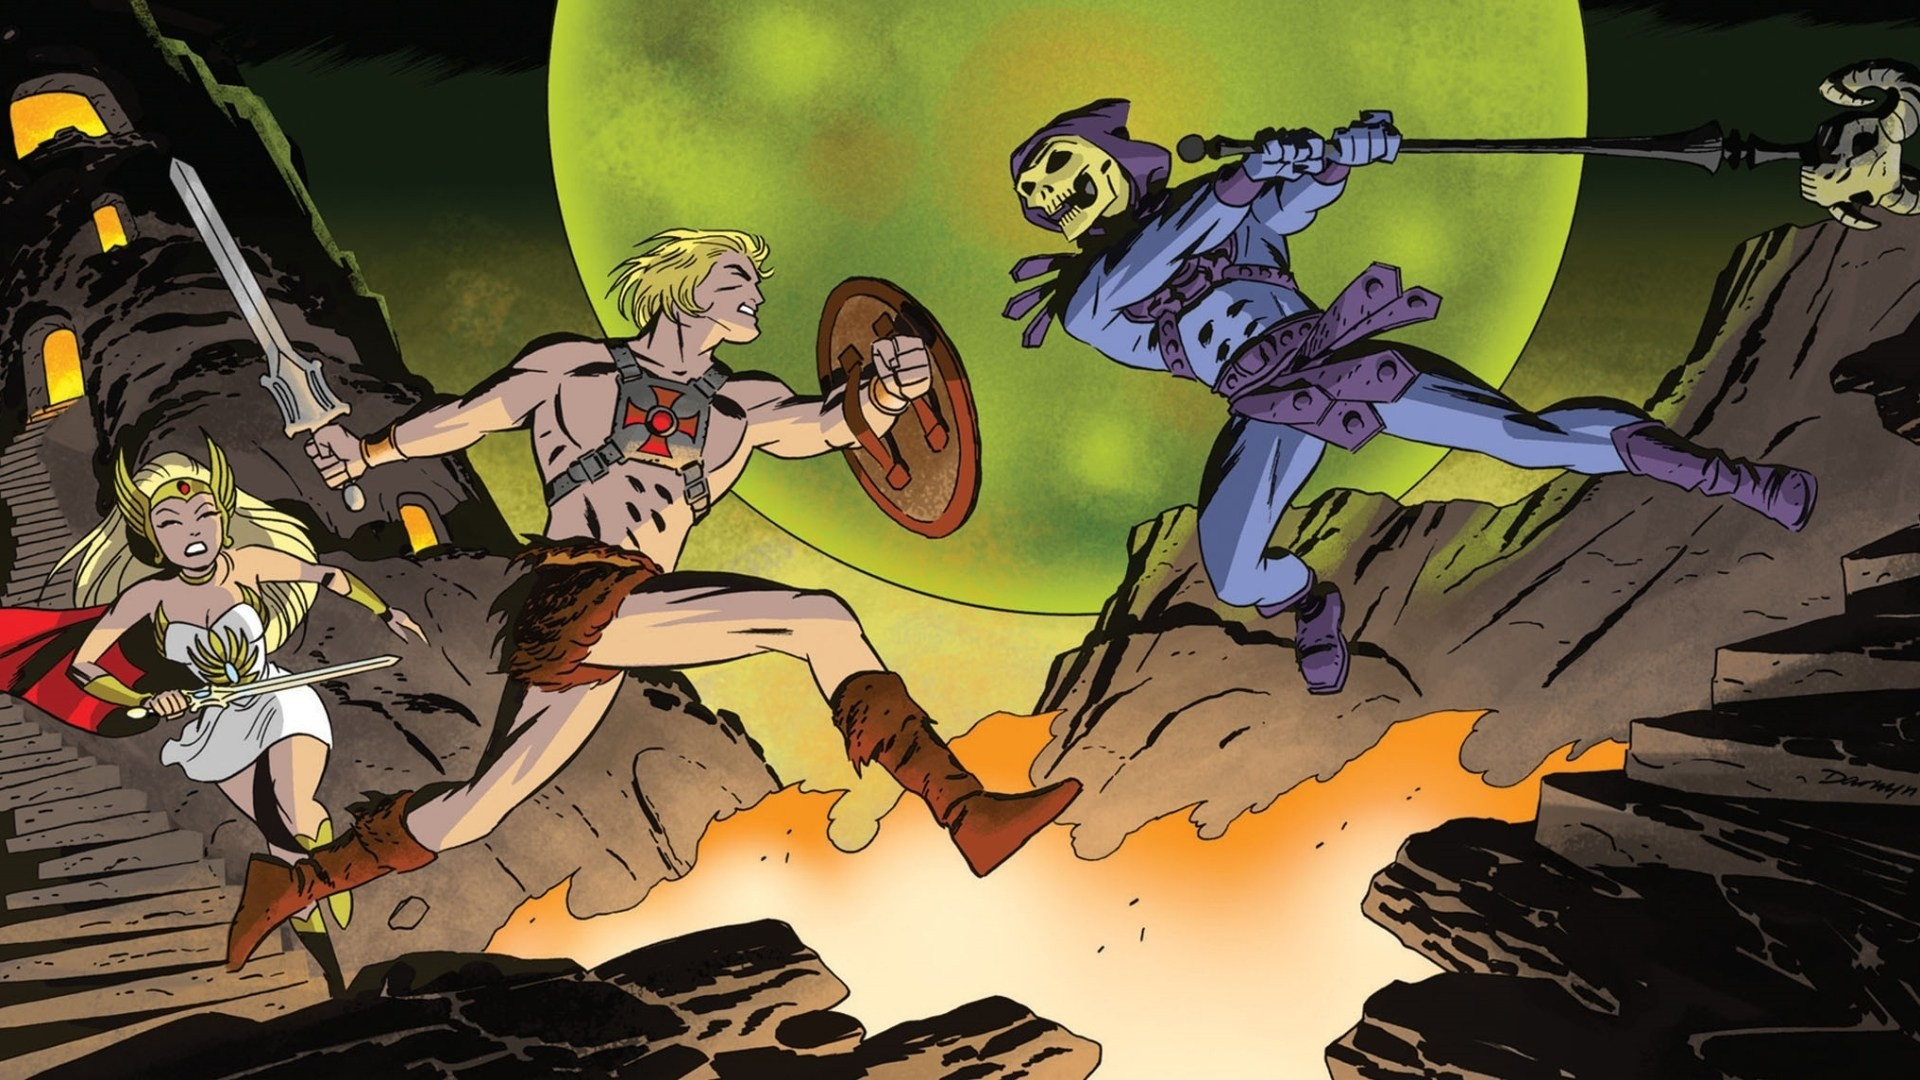 Res: 1920x1080, Skeletor She-Ra Masters of the Universe He-Man 1080p HD Wallpaper Background